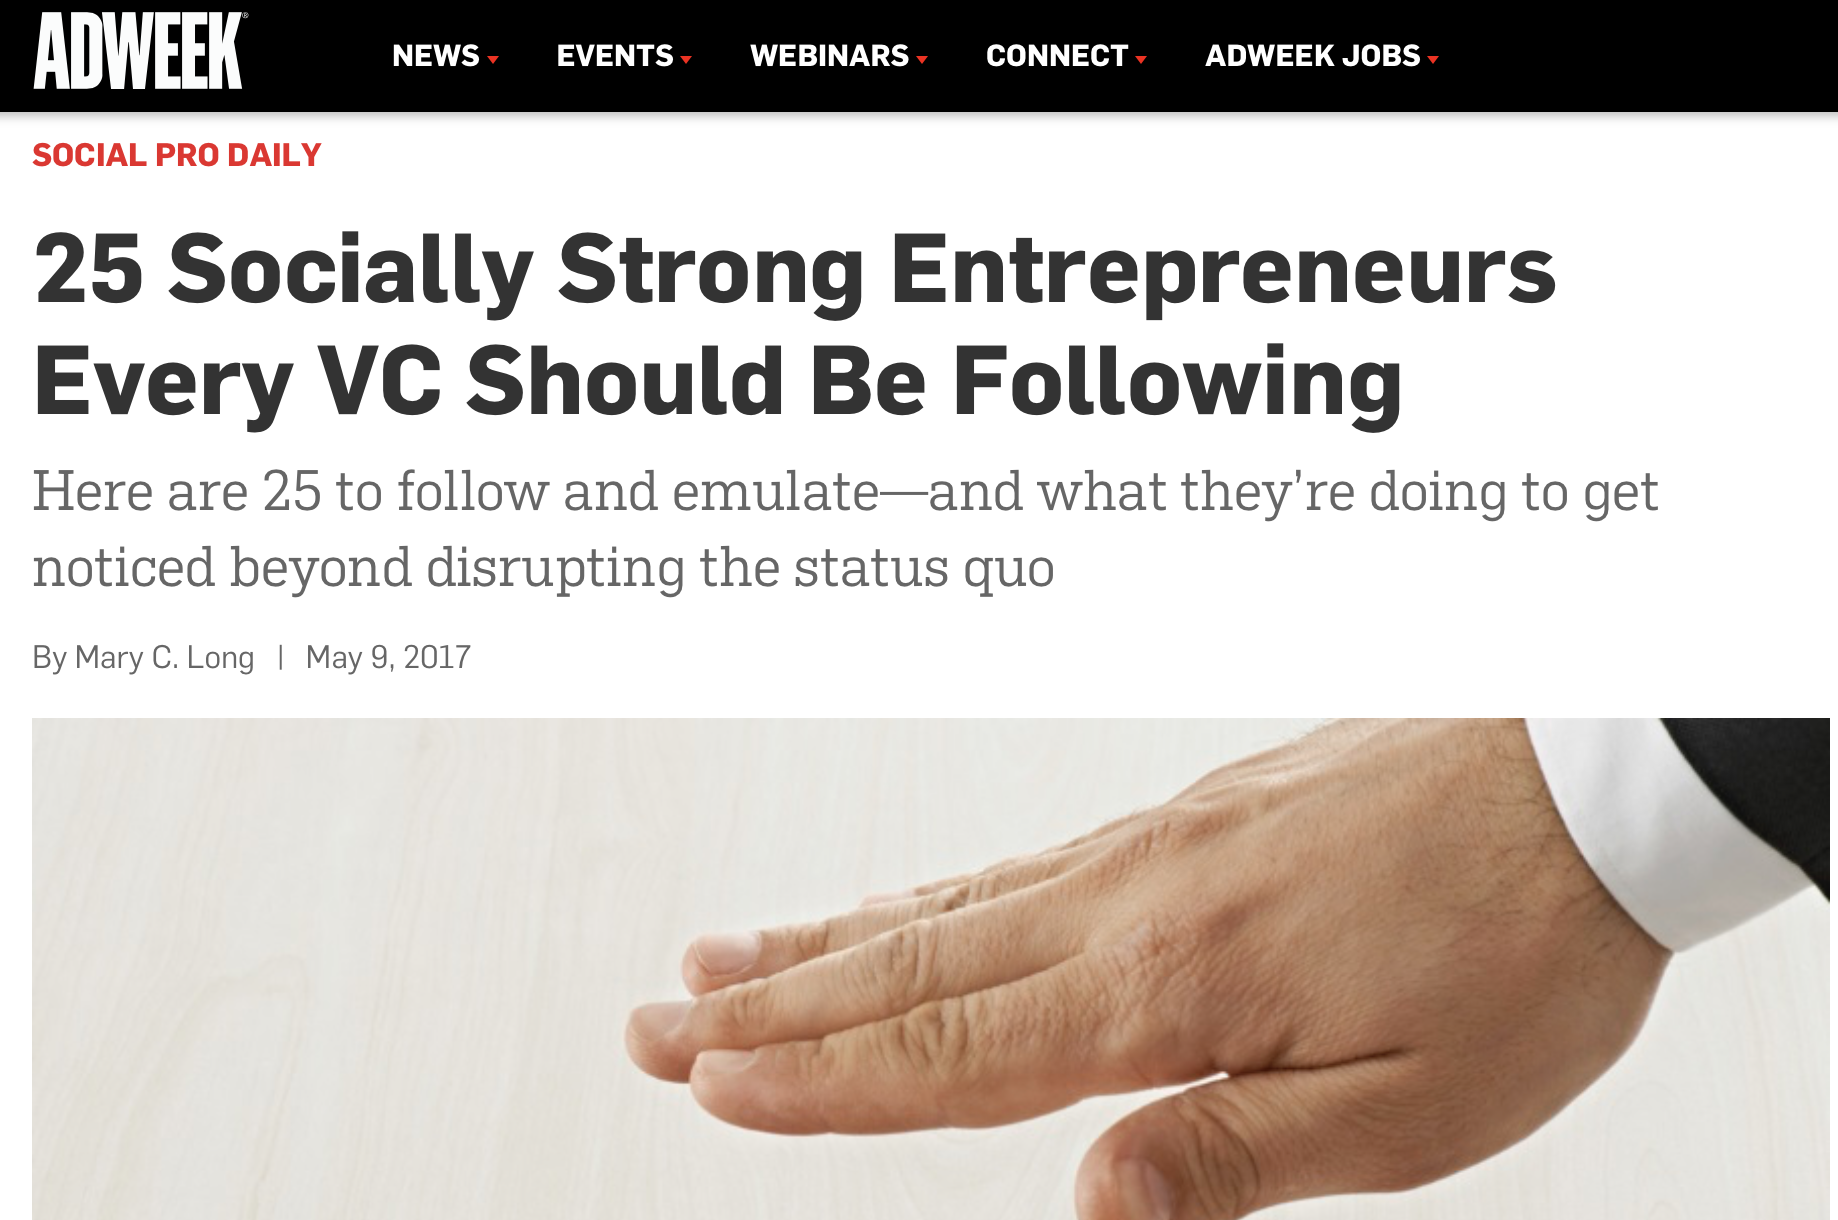 25 Socially Strong Entrepreneurs Every VC Should Be Following - ADWEEK